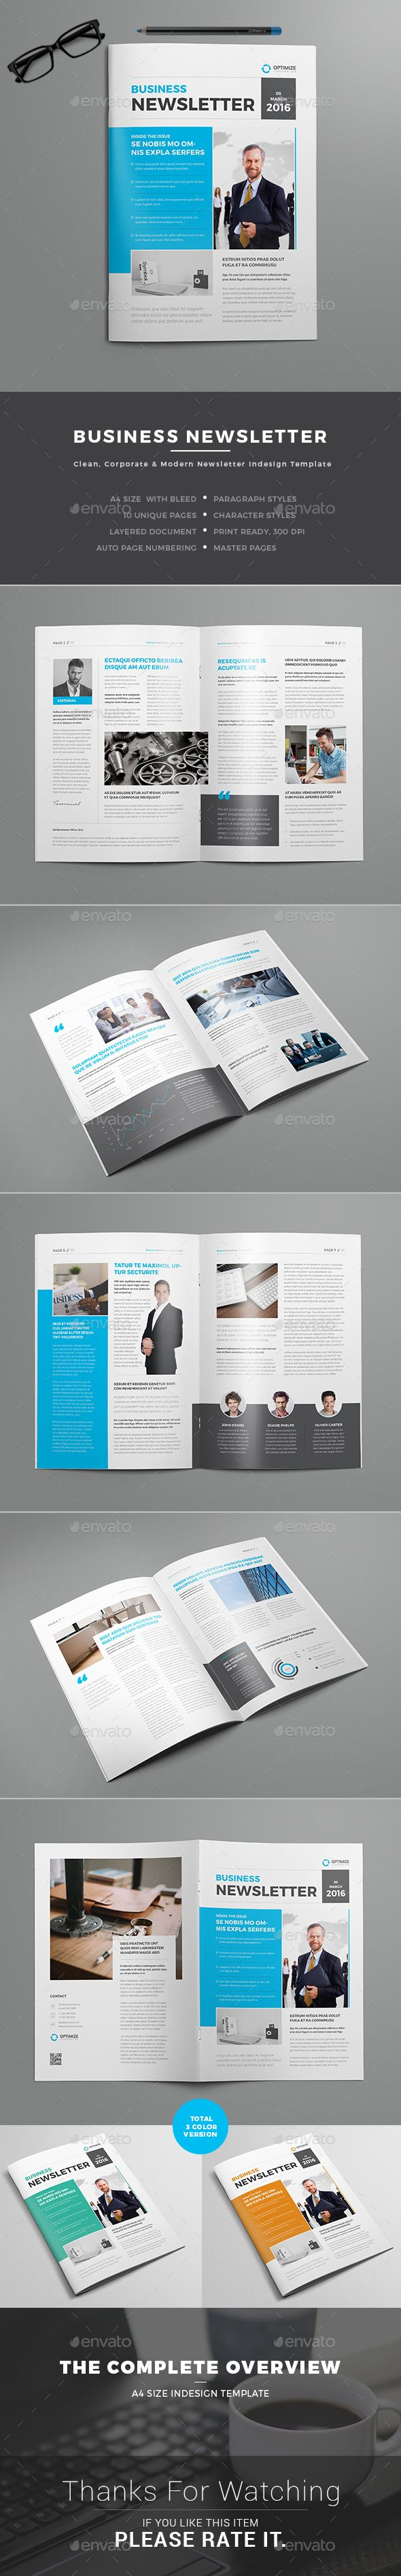 Business Newsletter Template InDesign INDD. Download here: http://graphicriver.net/item/business-newsletter/15138956?ref=ksioks